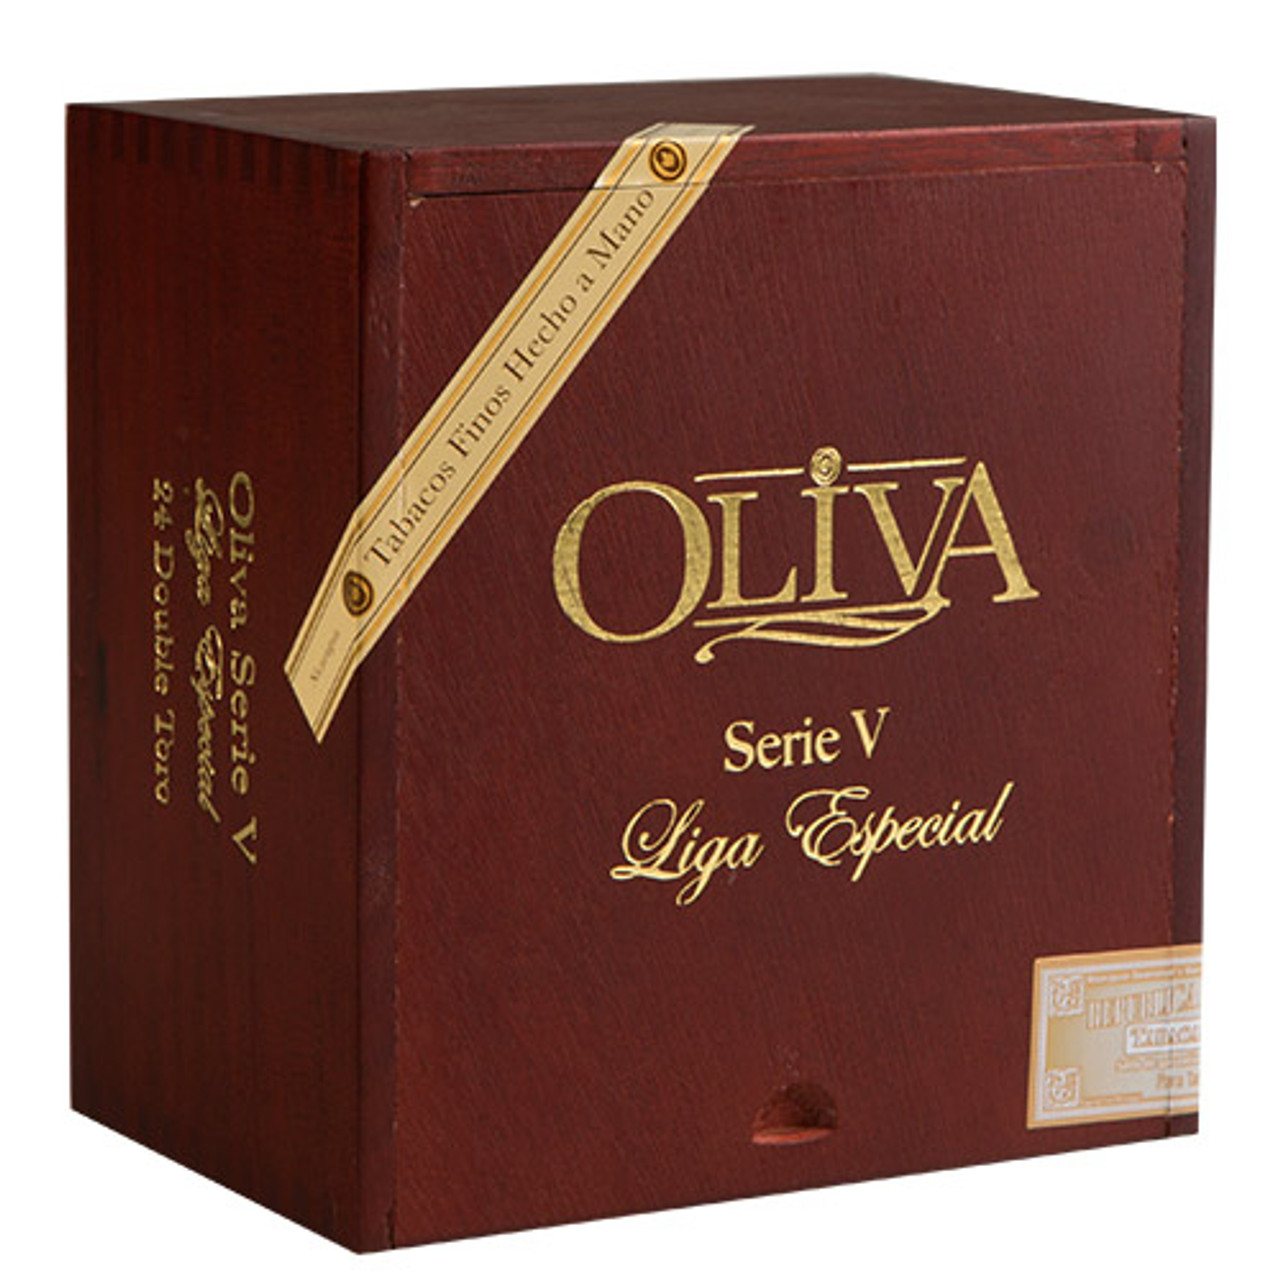 Oliva Serie V Double Toro Maduro Cigars - 6 x 60 (Box of 10)